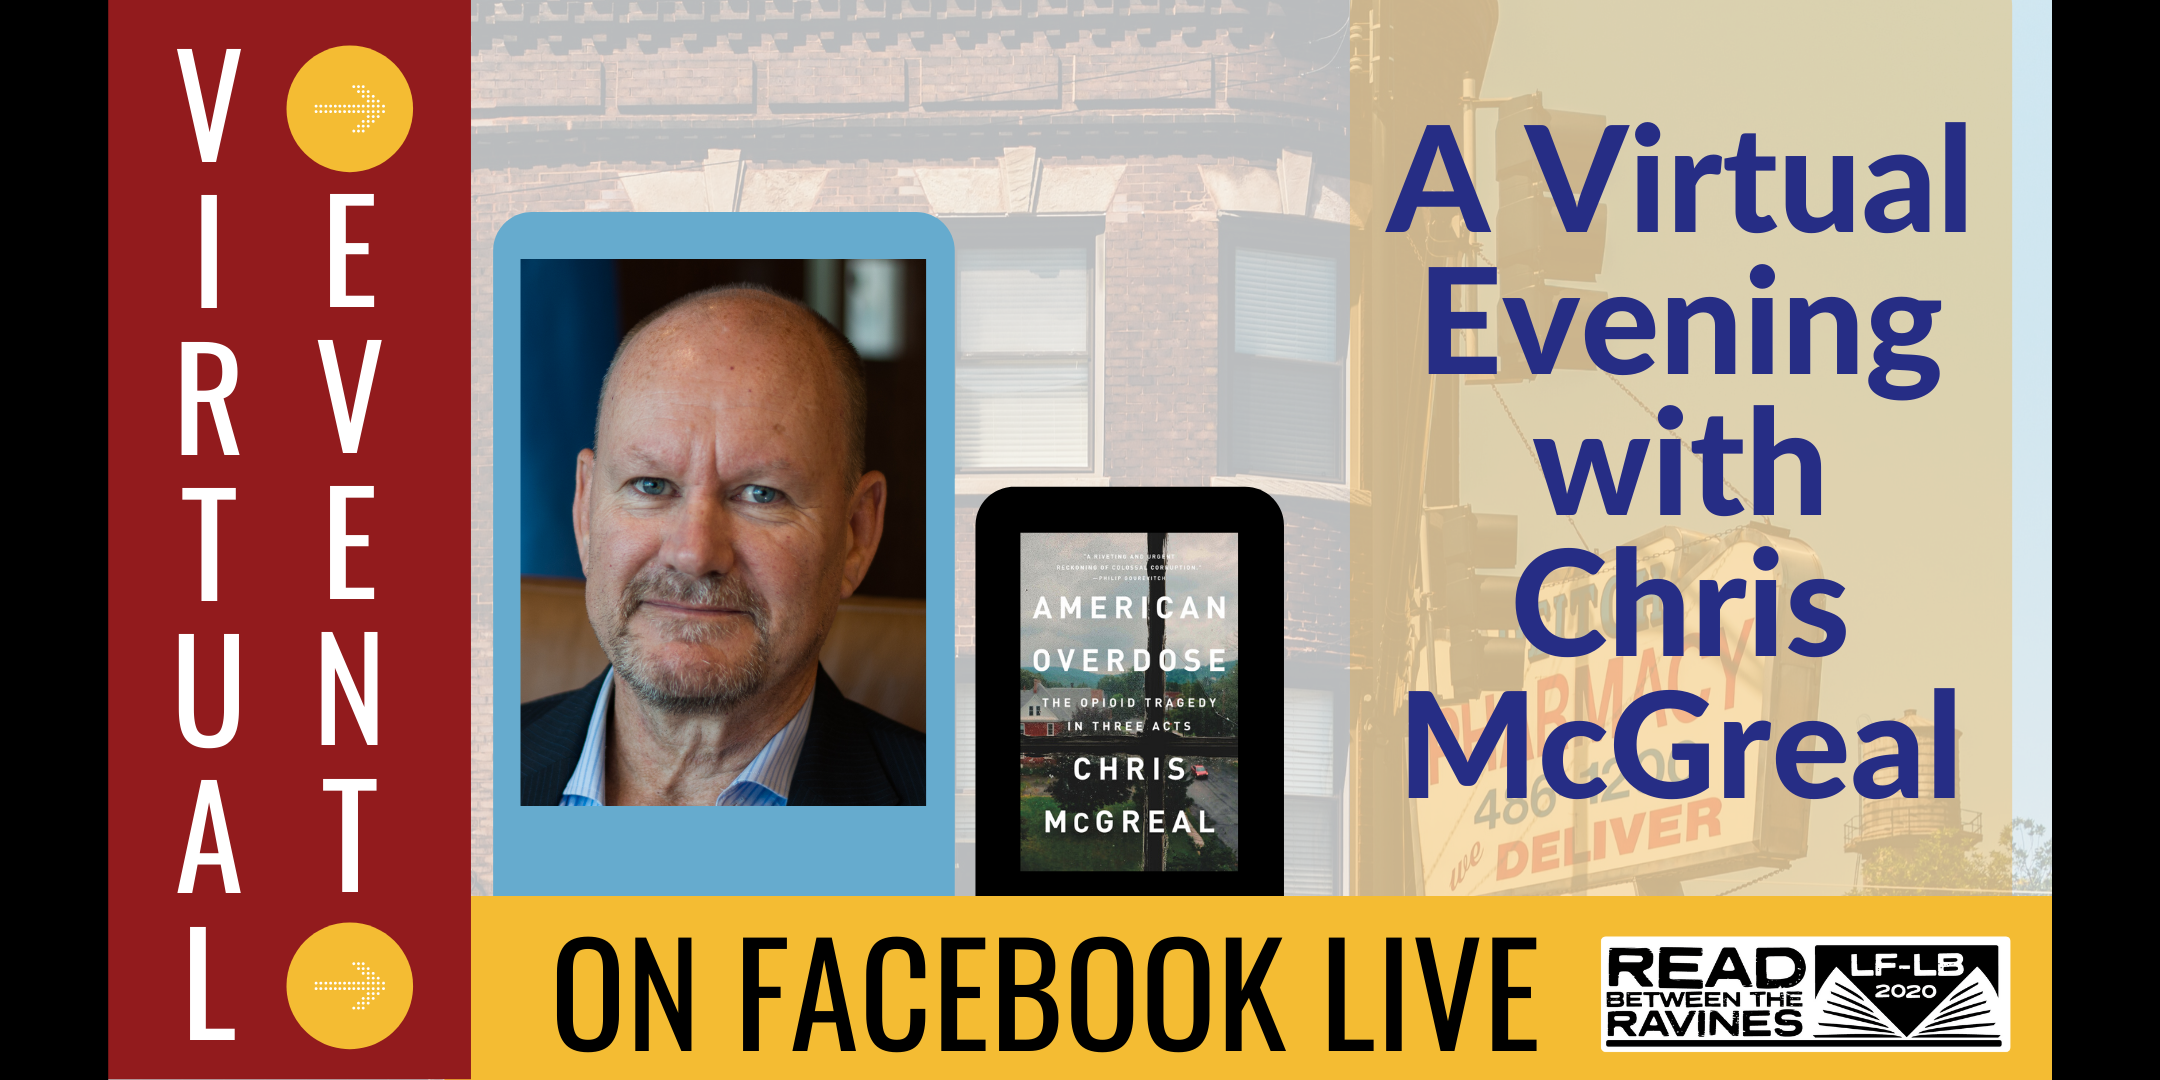 A VIrtual Evening with Chris McGreal